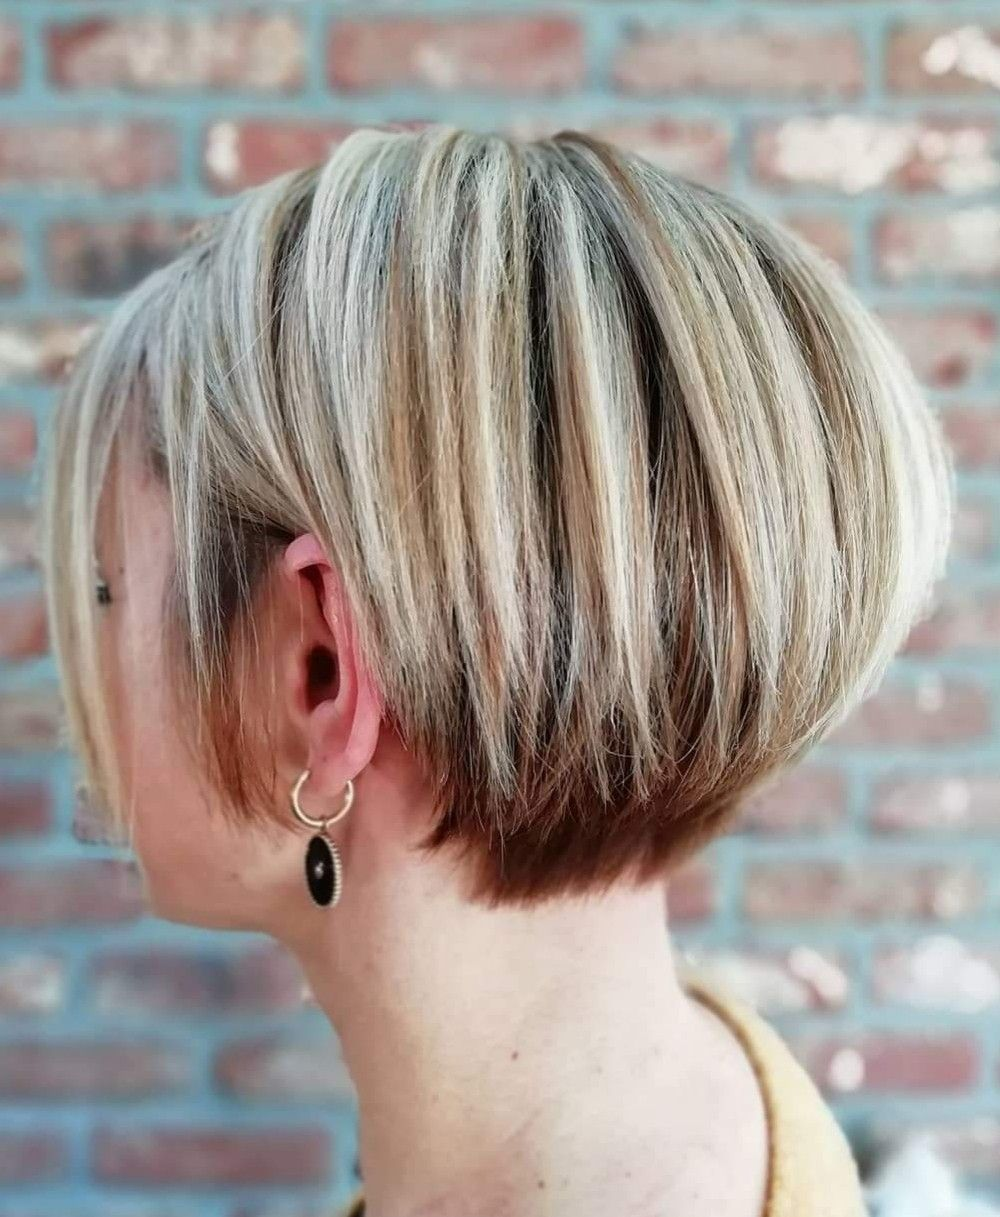 Long Pixie Hairstyle In 2020 Short Hair Back Short Hair Back View Long Pixie Hairstyles